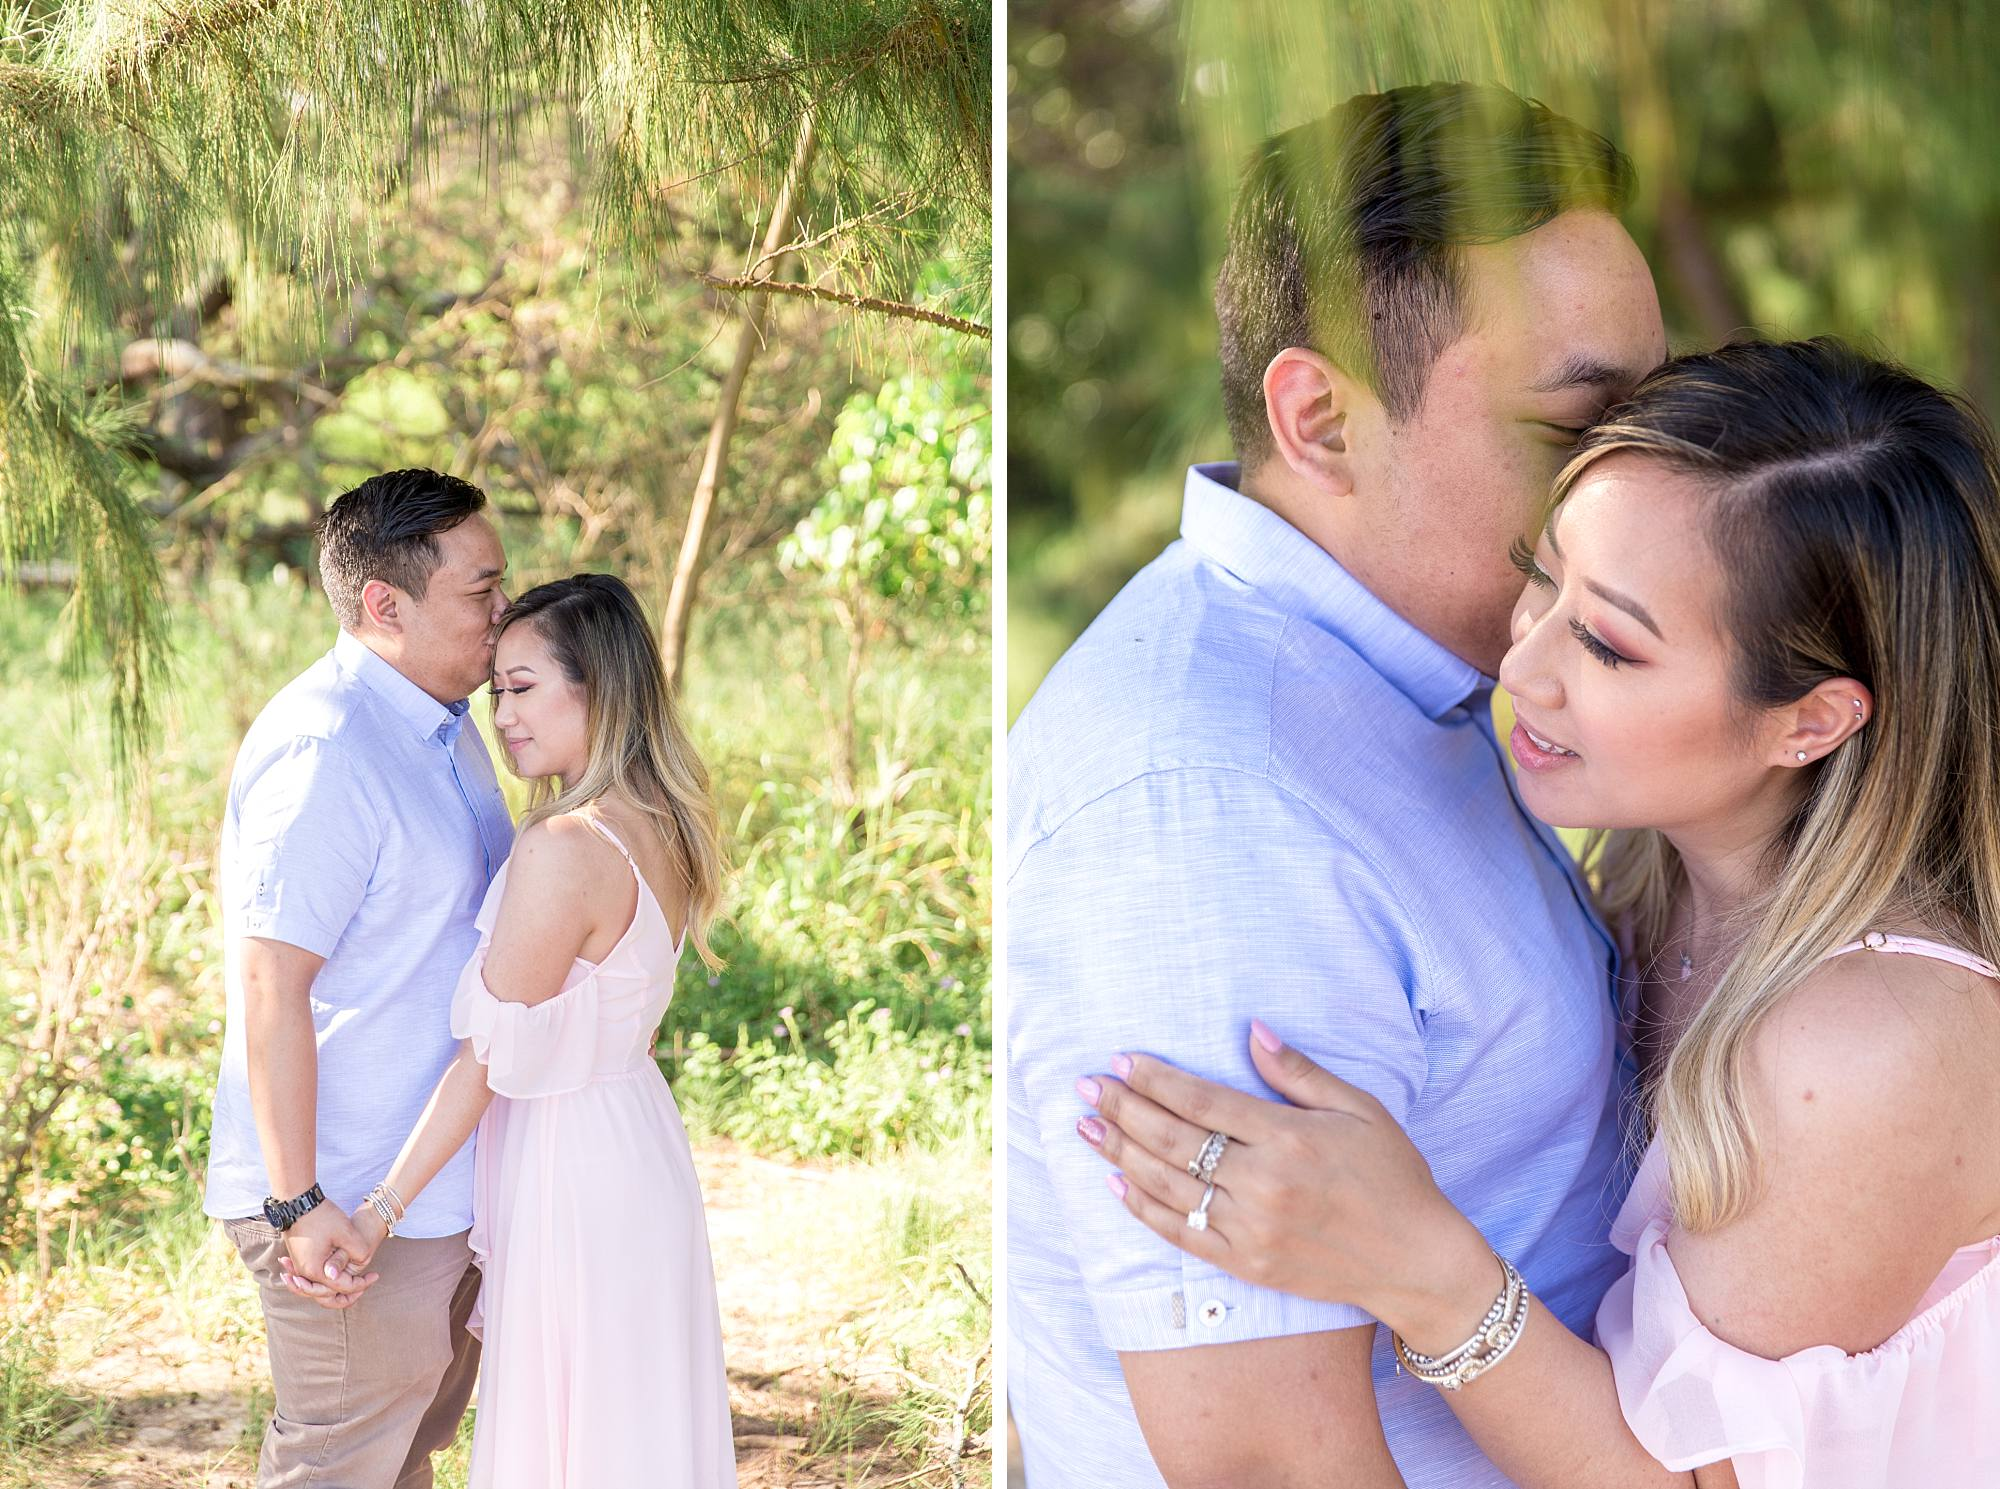 fiance kissing his lady's cheek sweetly in front of greenery